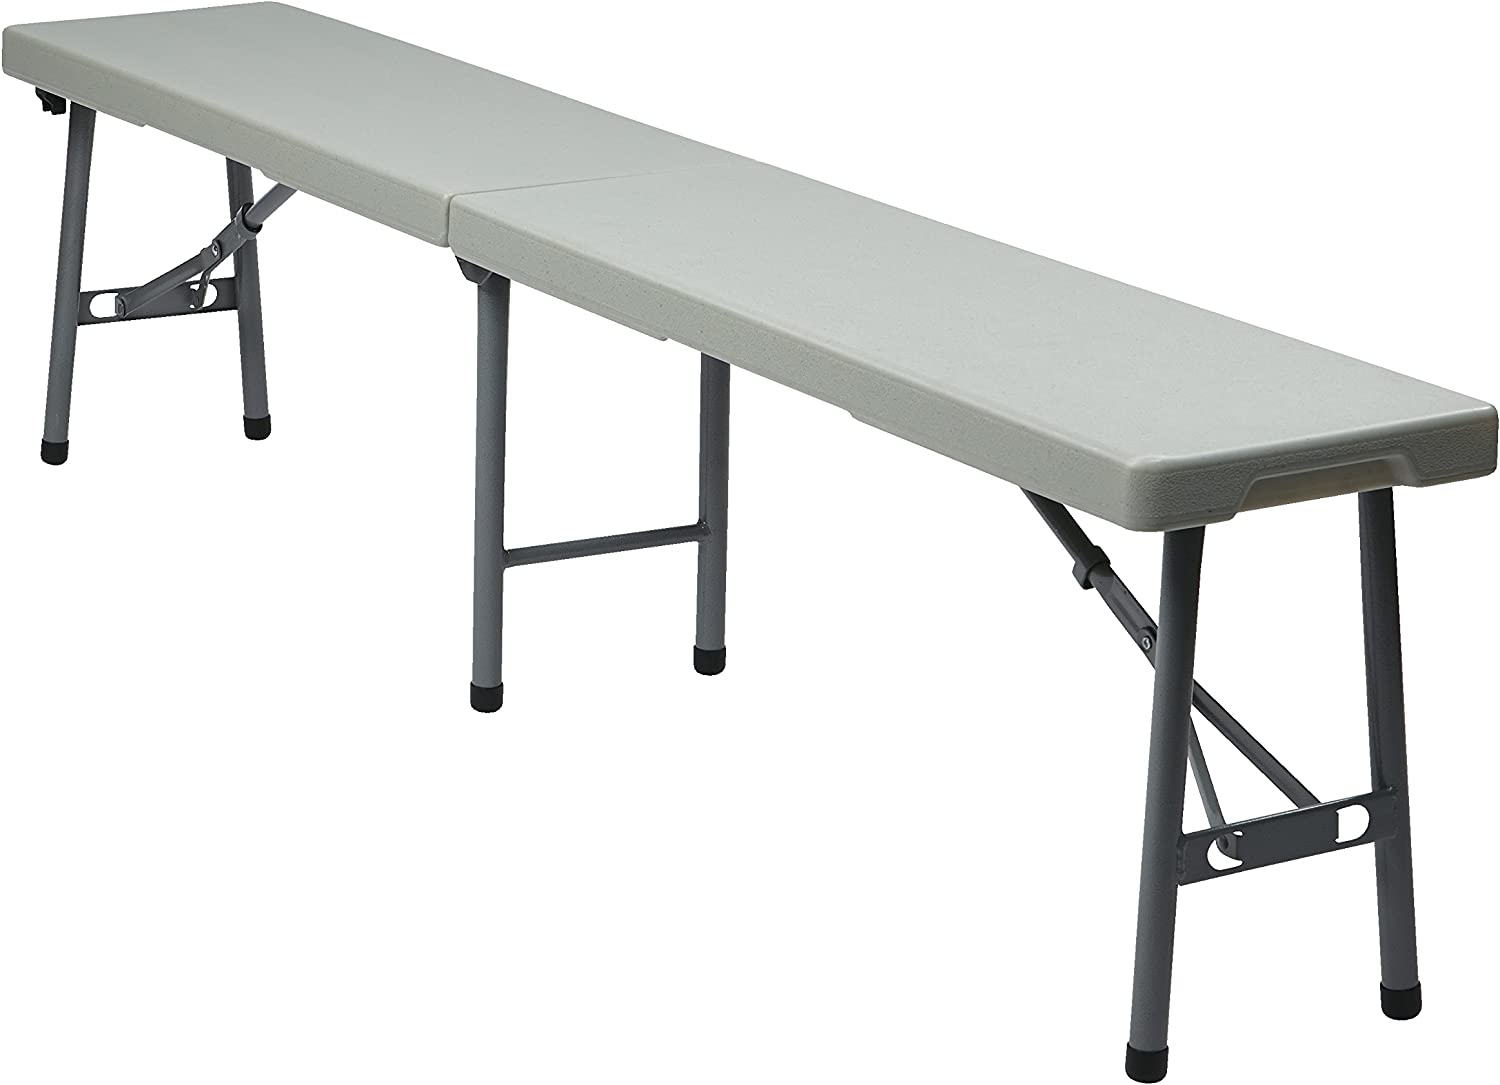 Office Star outdoor bench, 6', White: Kitchen & Dining